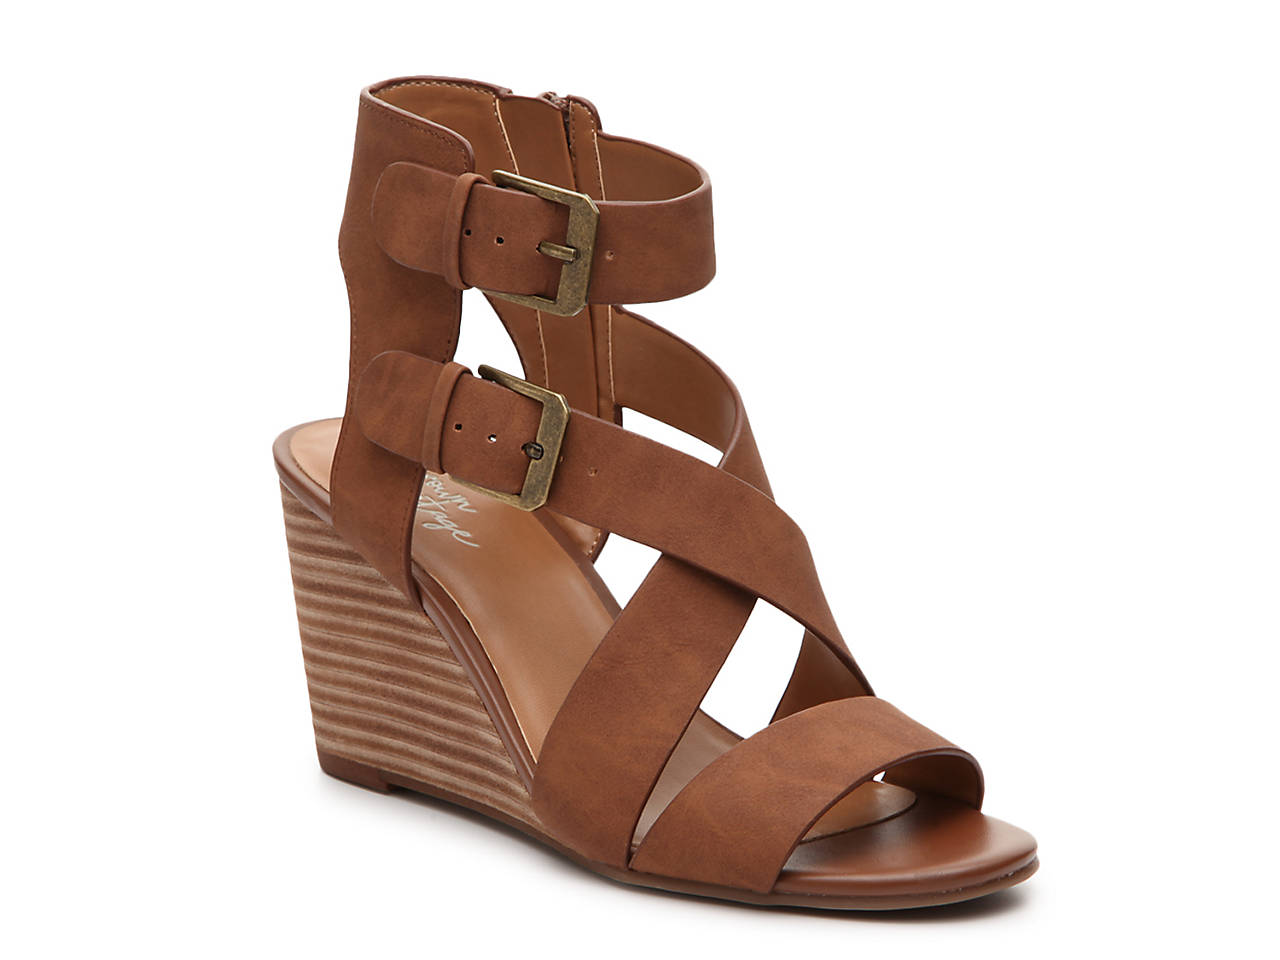 Olivia Miller Cocoa Women's ... High Heel Sandals